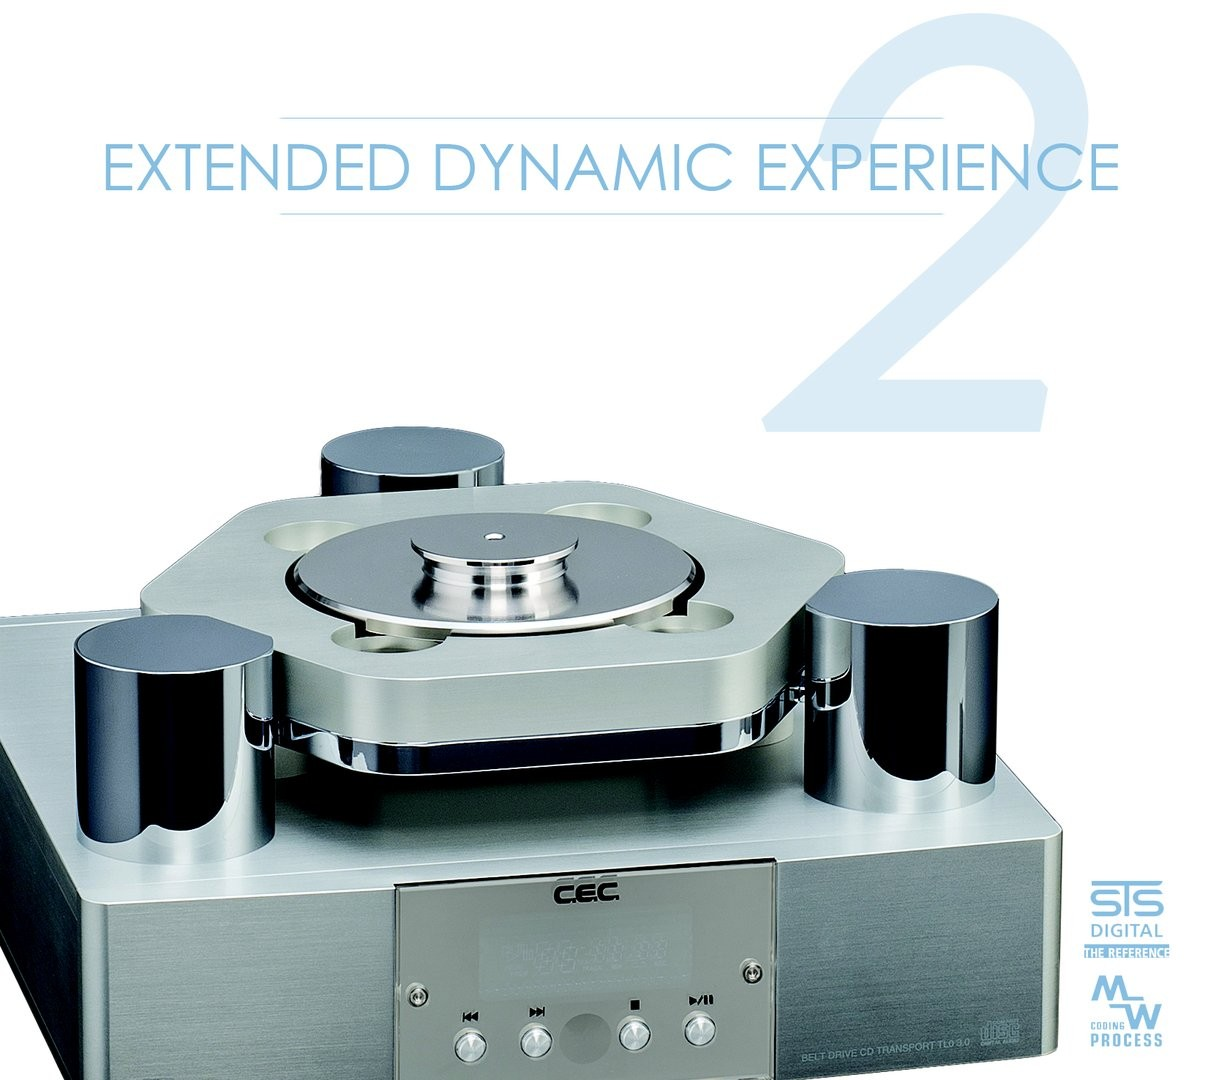 STS Digital - Extended Dynamic Experiance, Vol. 2